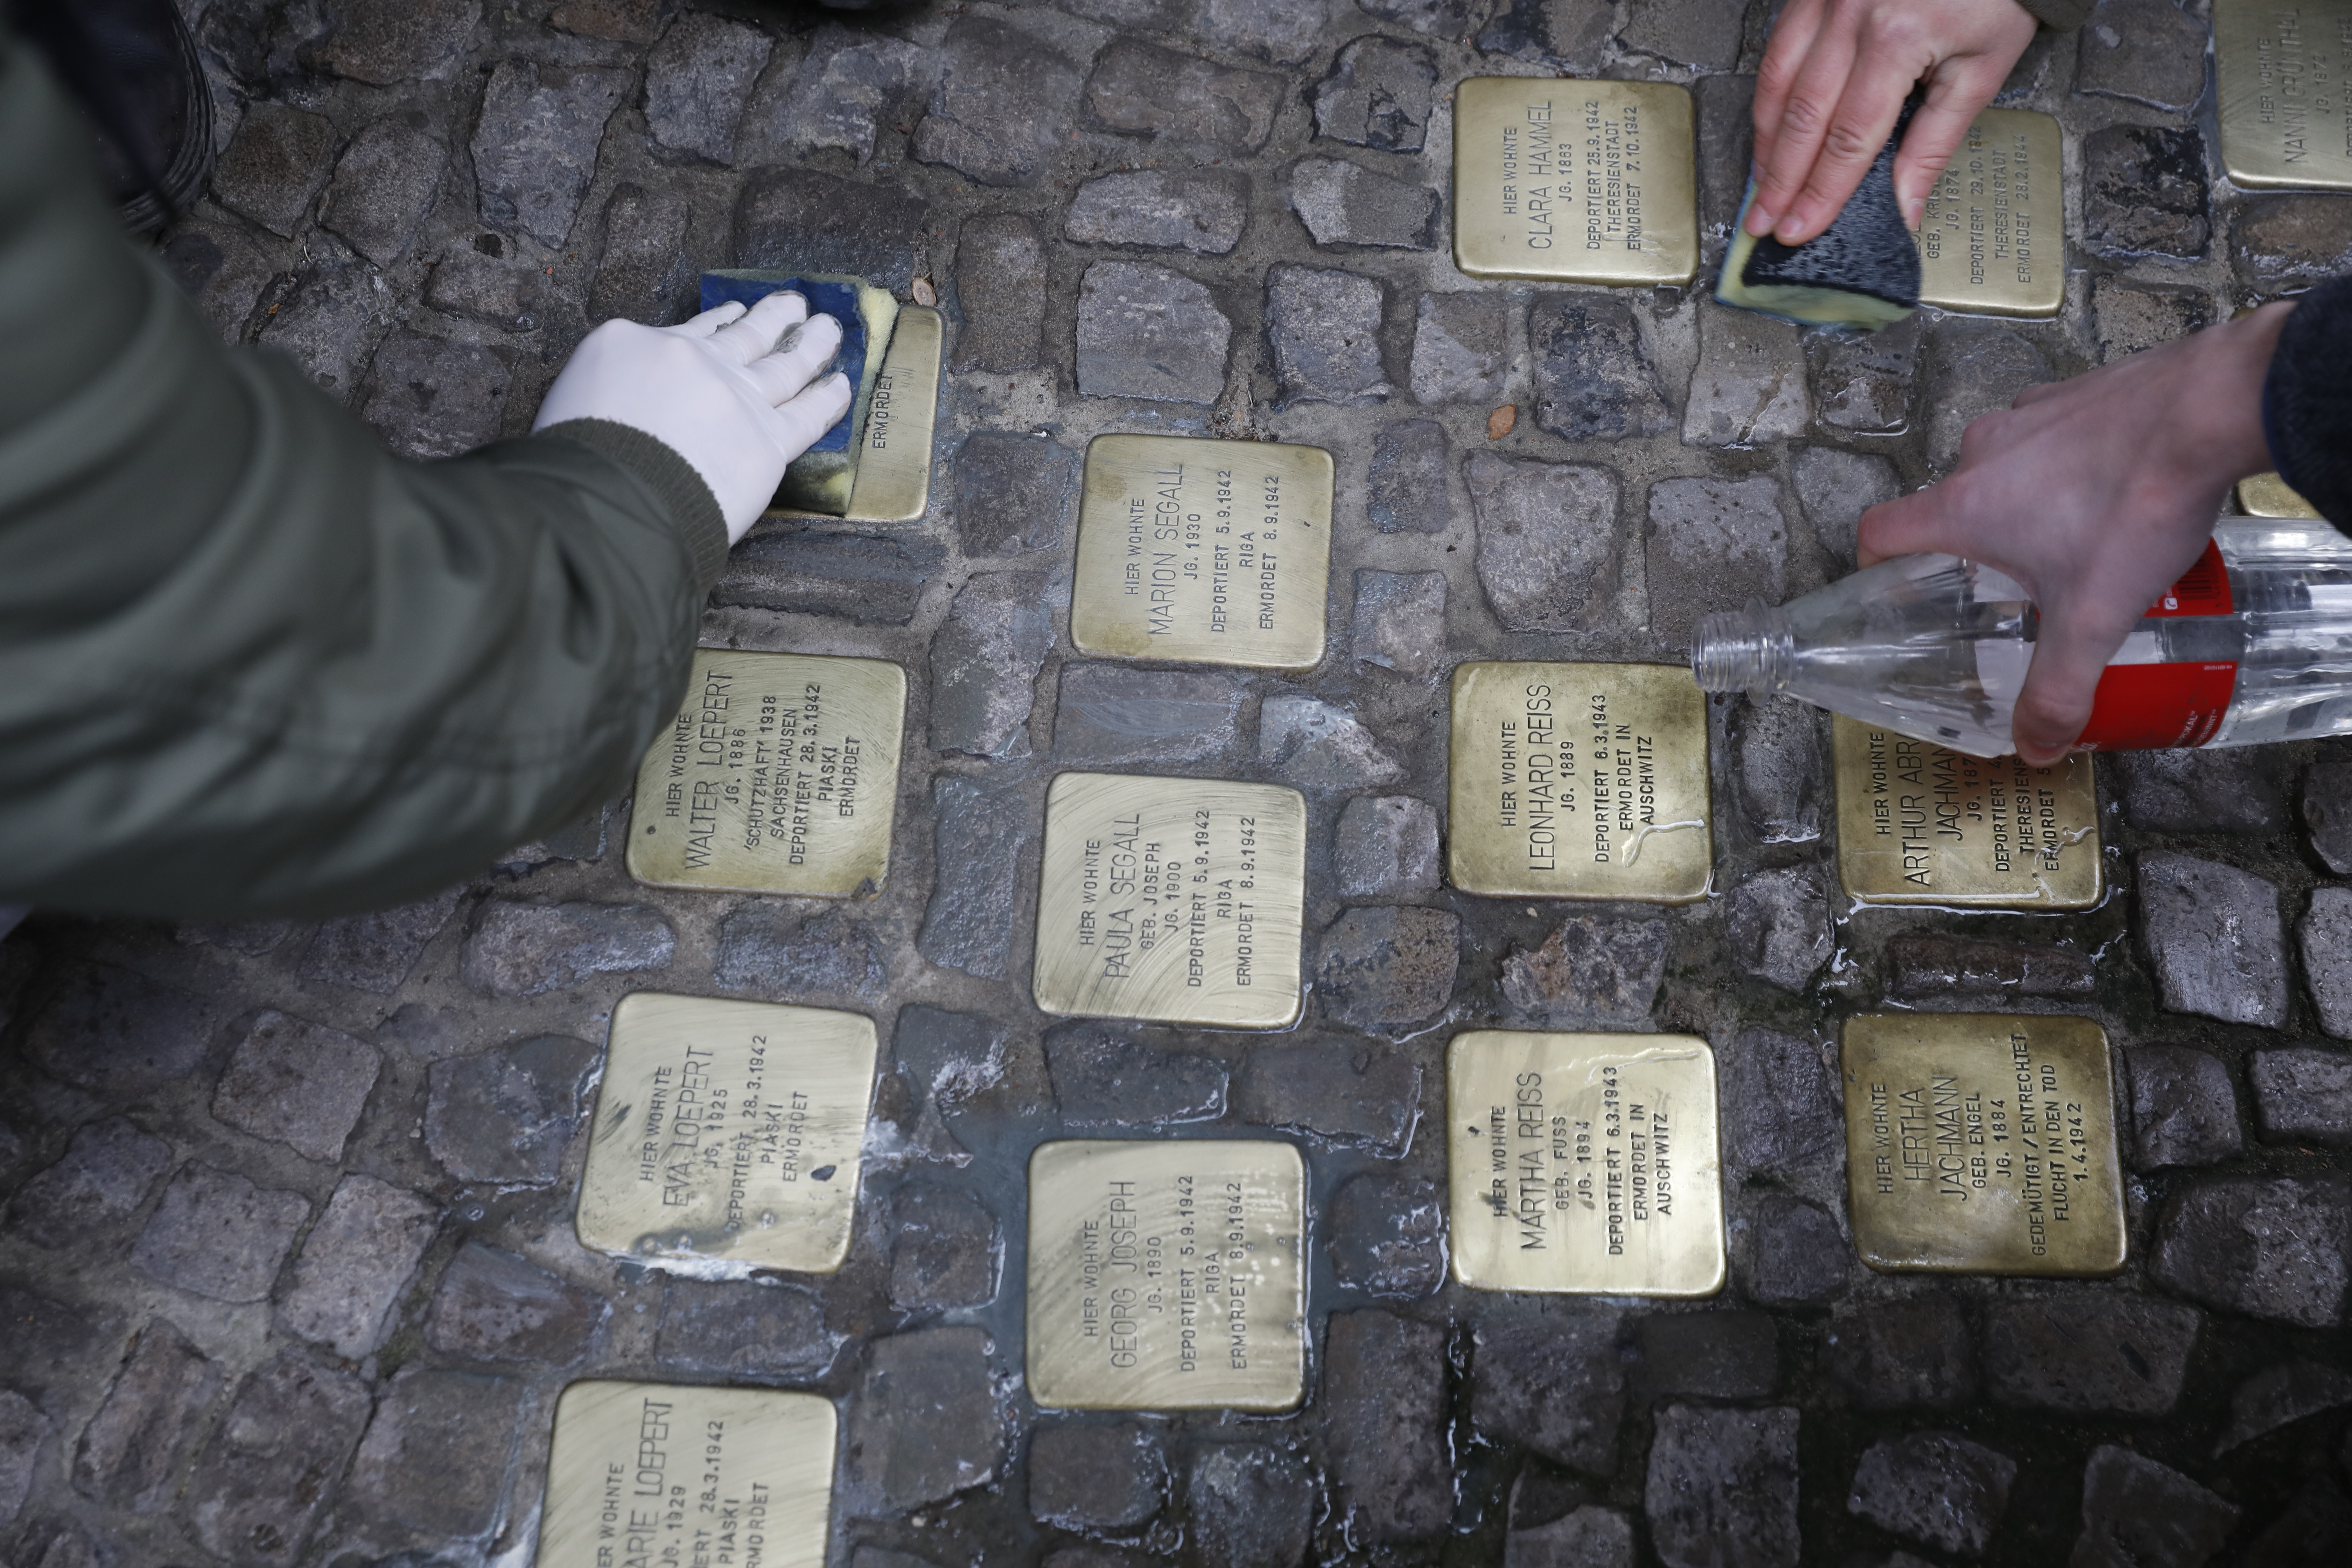 People clean the Stolpersteine memorials. Photo by Michele Tantussi via Getty Images.